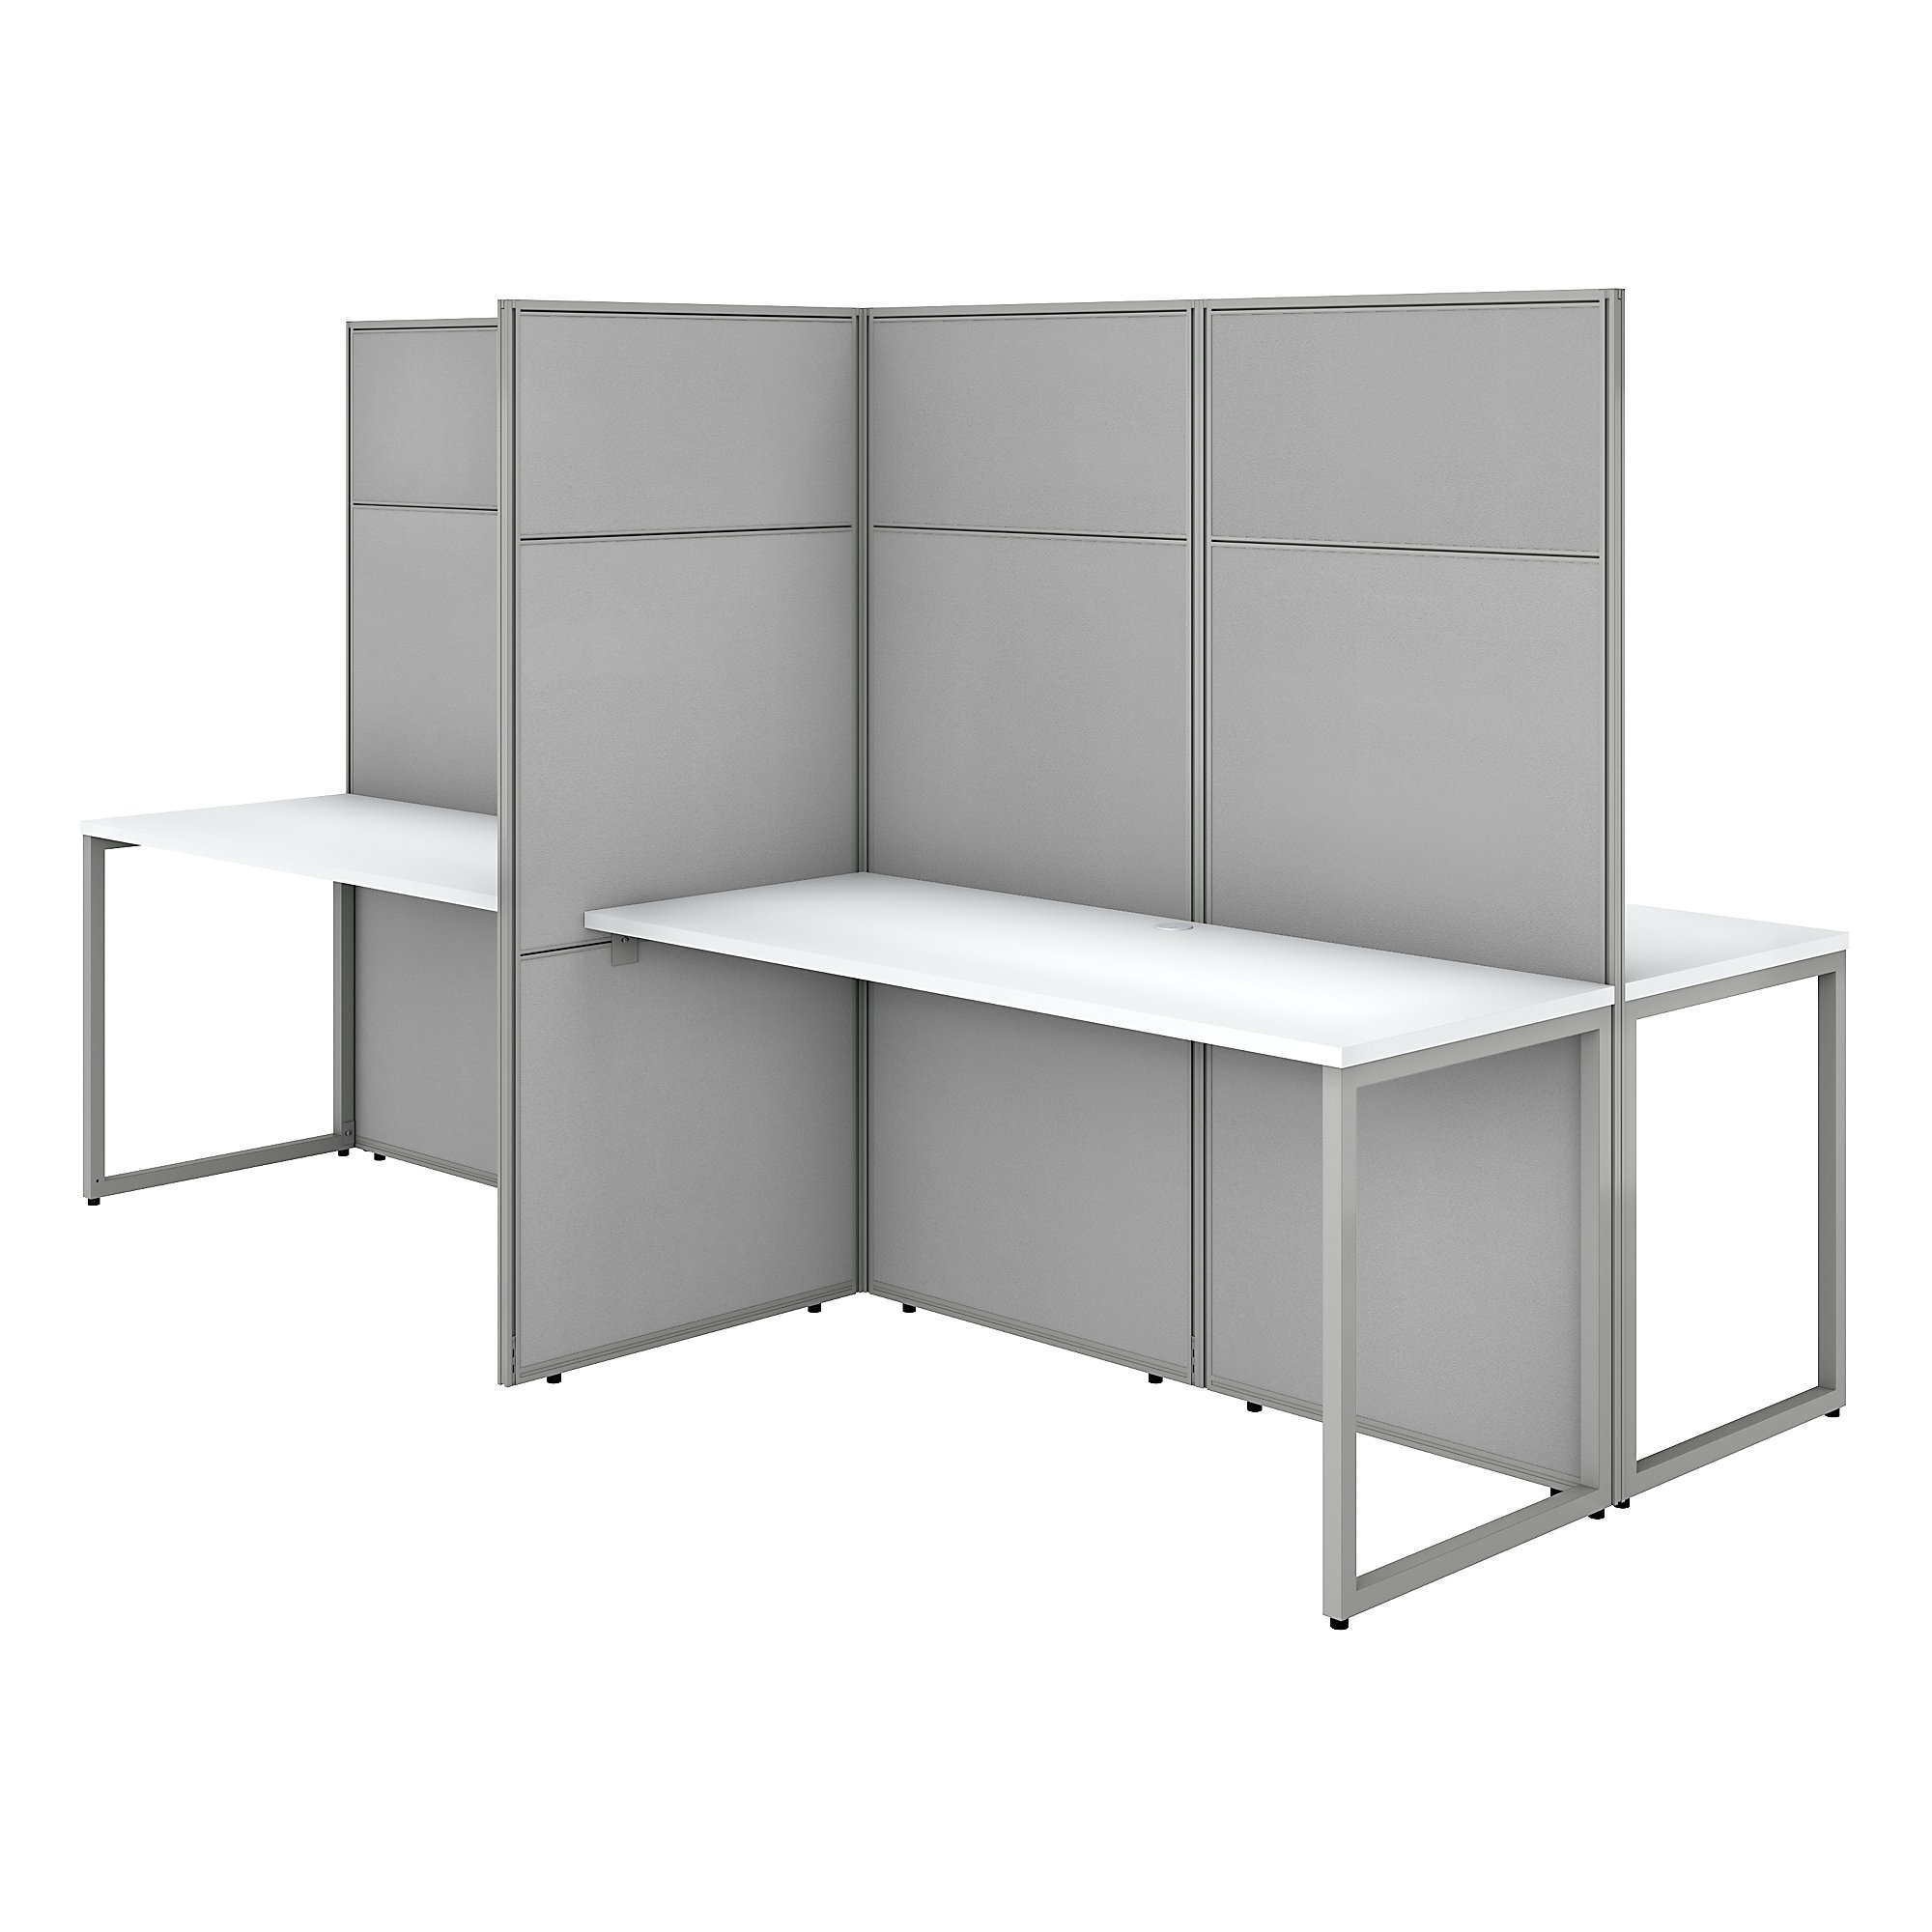 pure whiteeasy office 4 person privacy workstation